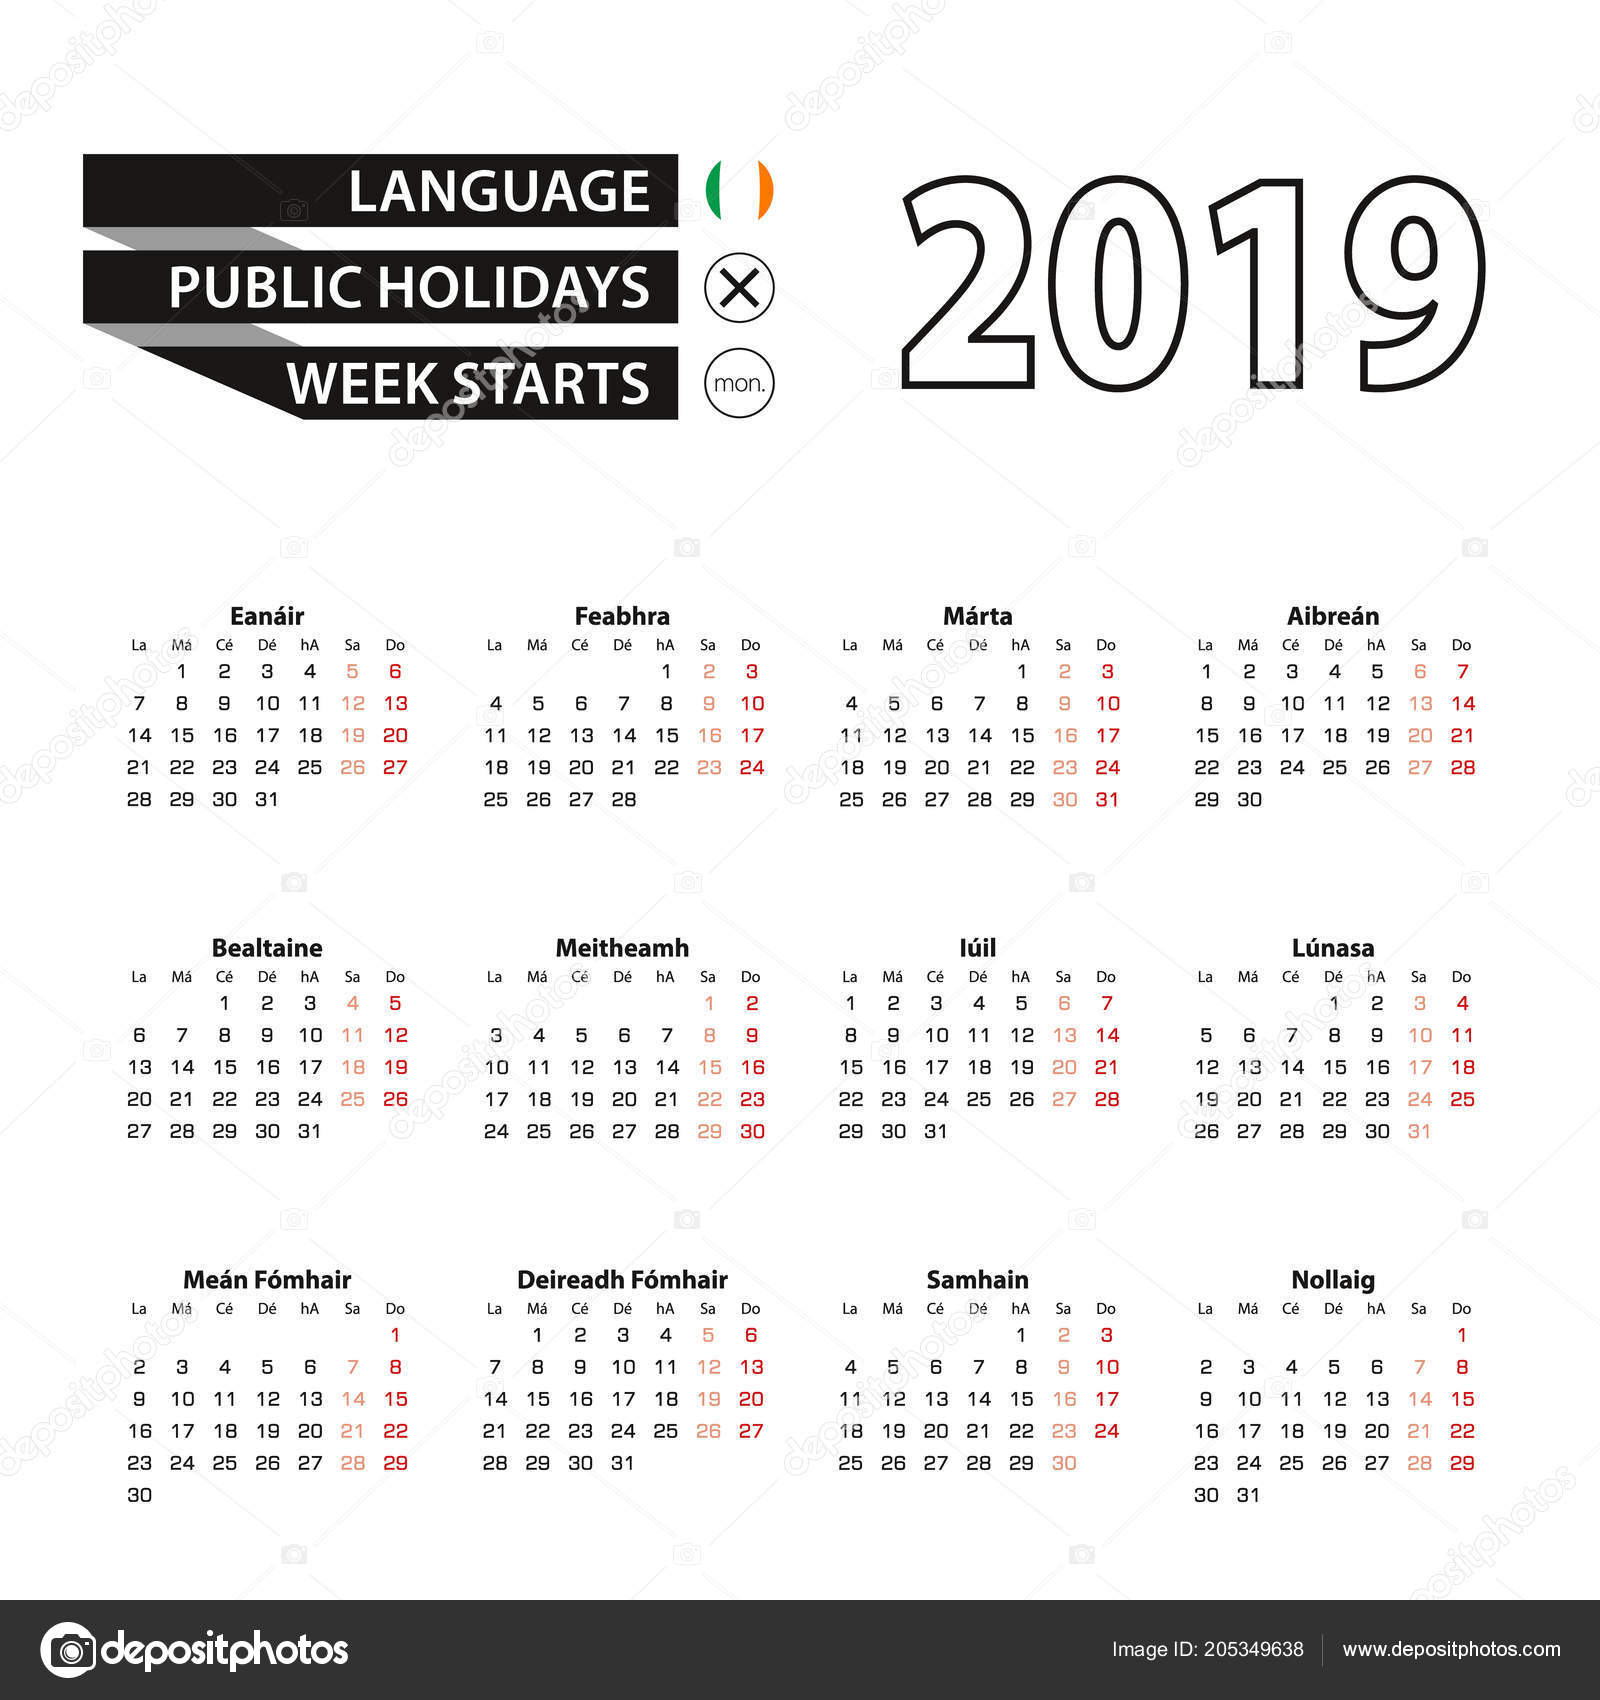 calendar 2019 in irish language week starts on monday vector calendar 2019 year vector by boldg